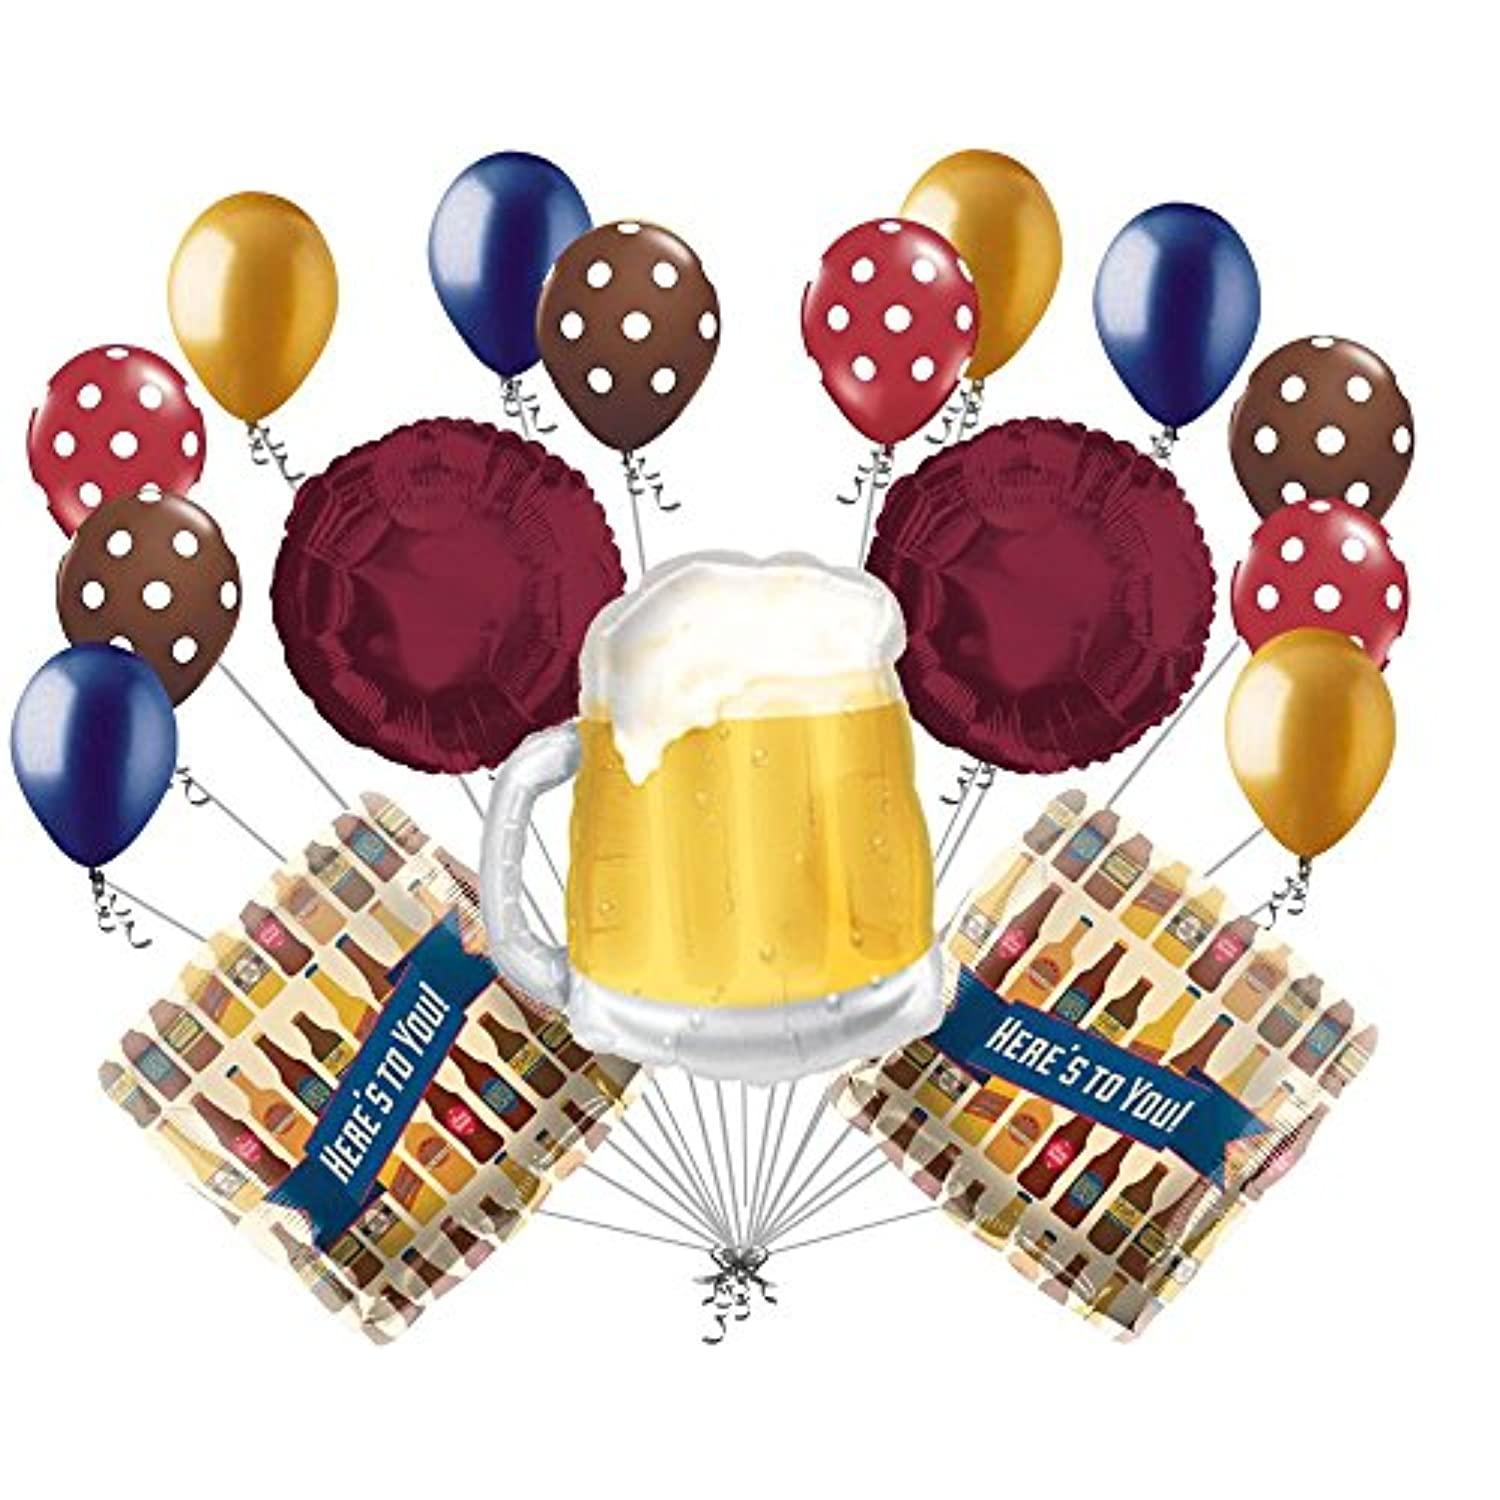 17 pc Beer Mug Here 's to YouバルーンブーケHappy誕生日卒業式Dadパーティー